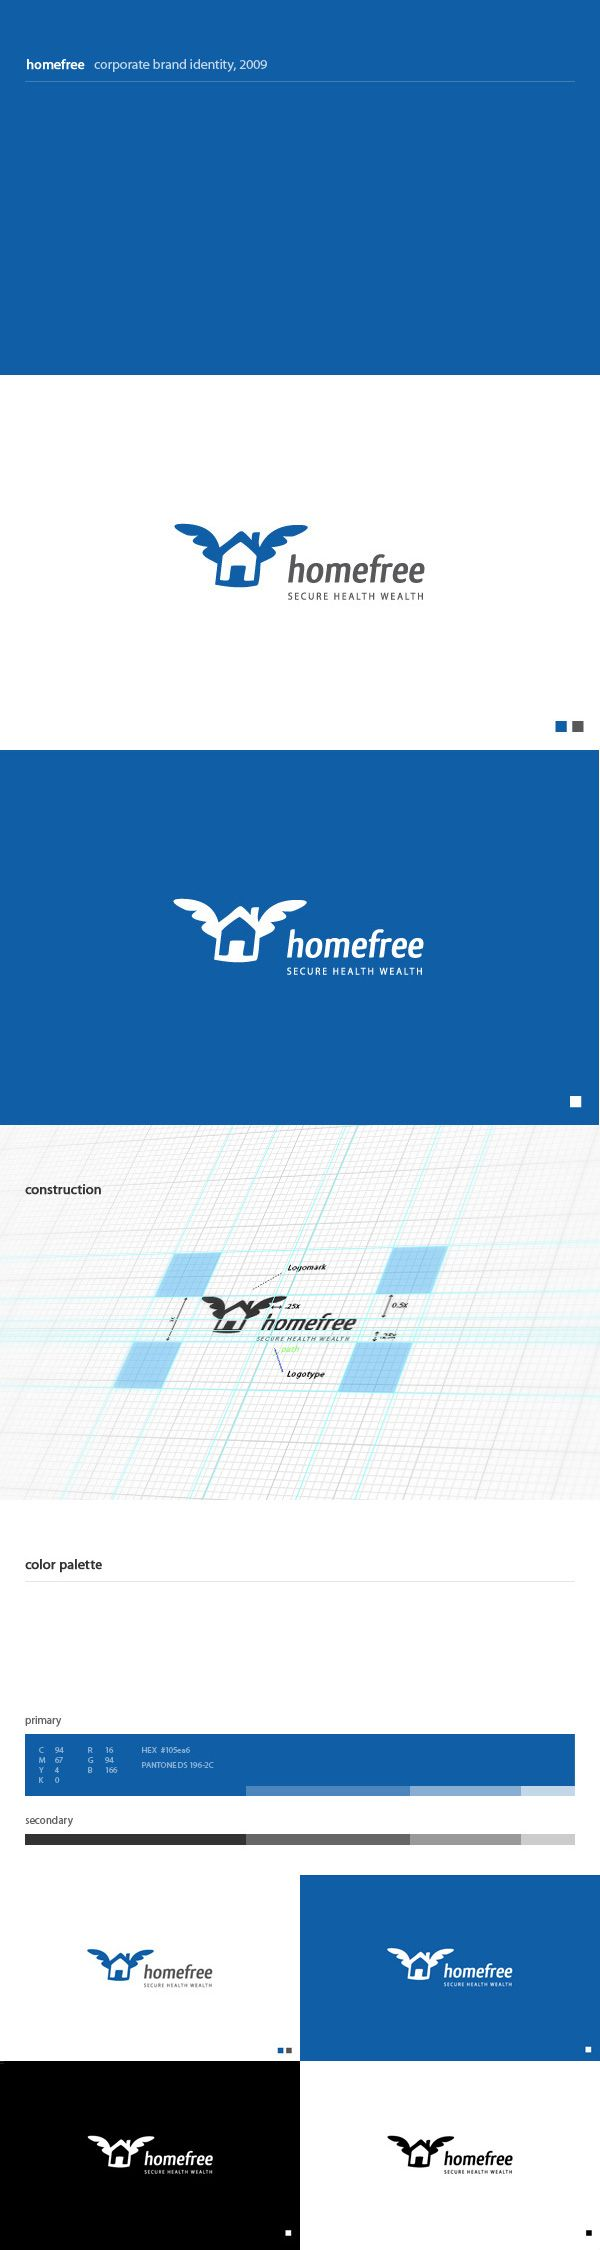 Logo design process for homefree